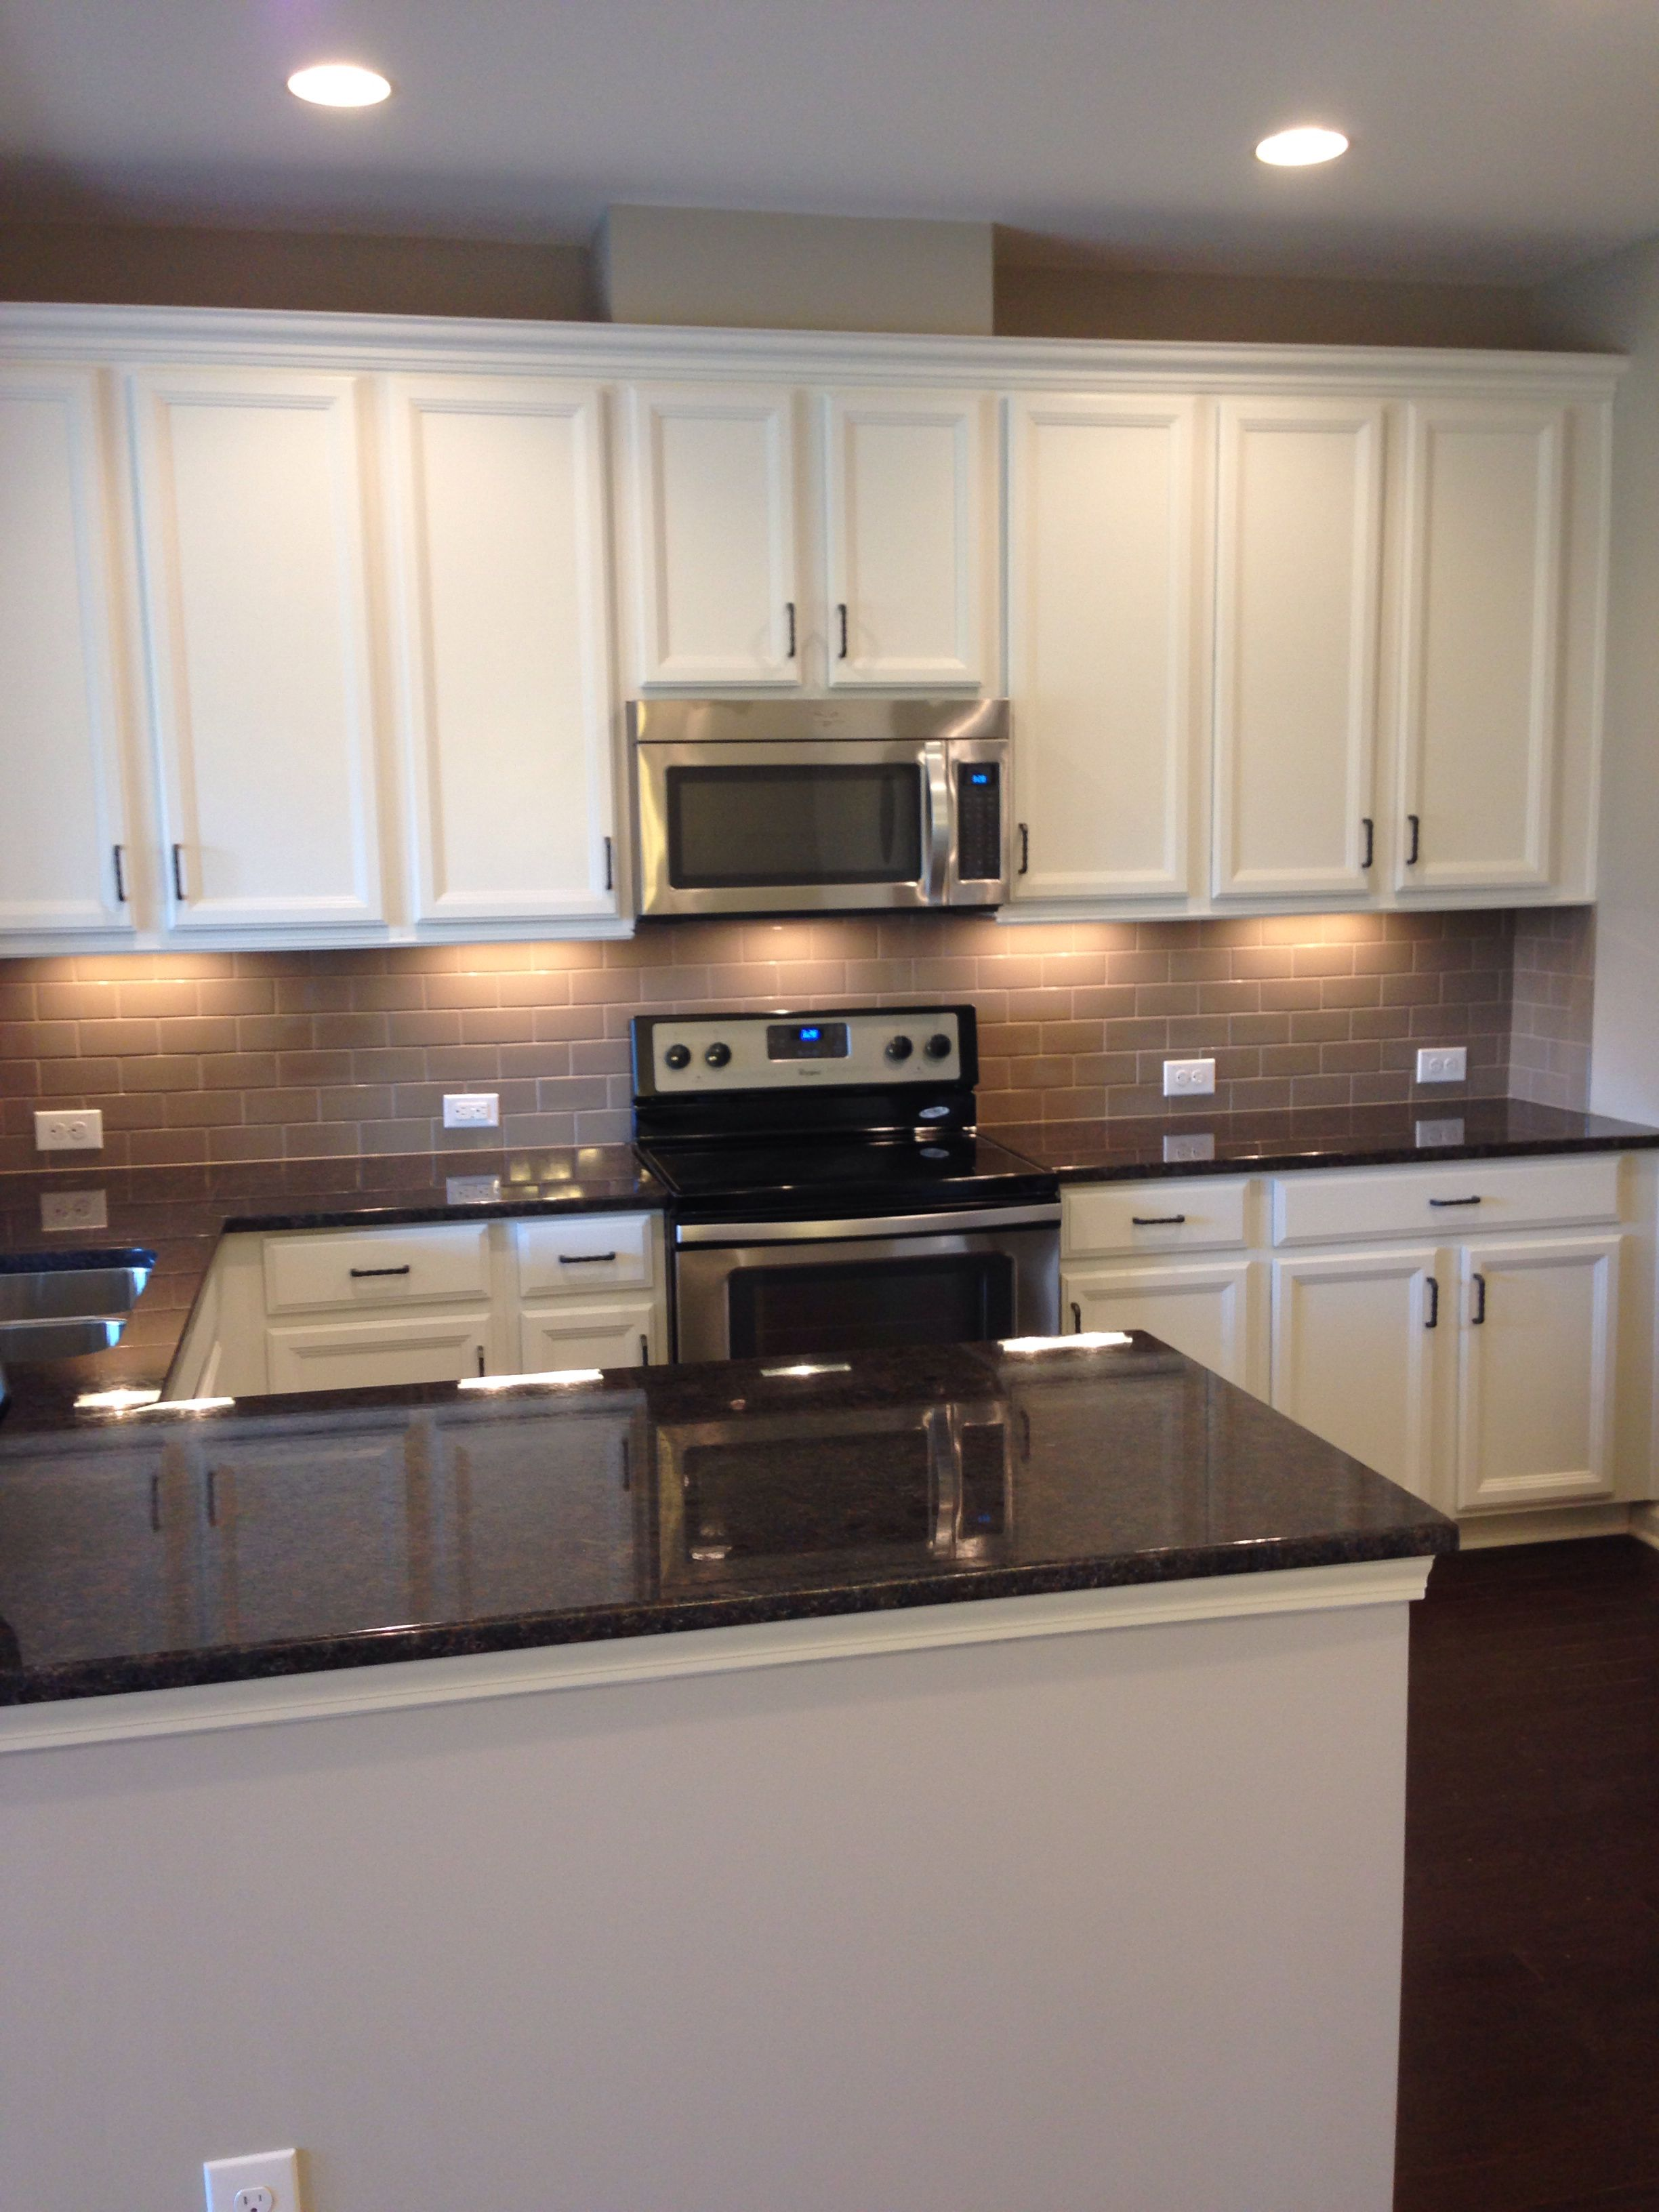 Off White Kitchen Cabinets With Brown Granite My New Kitchen White Cabinets Tan Subway Tile Backsplash